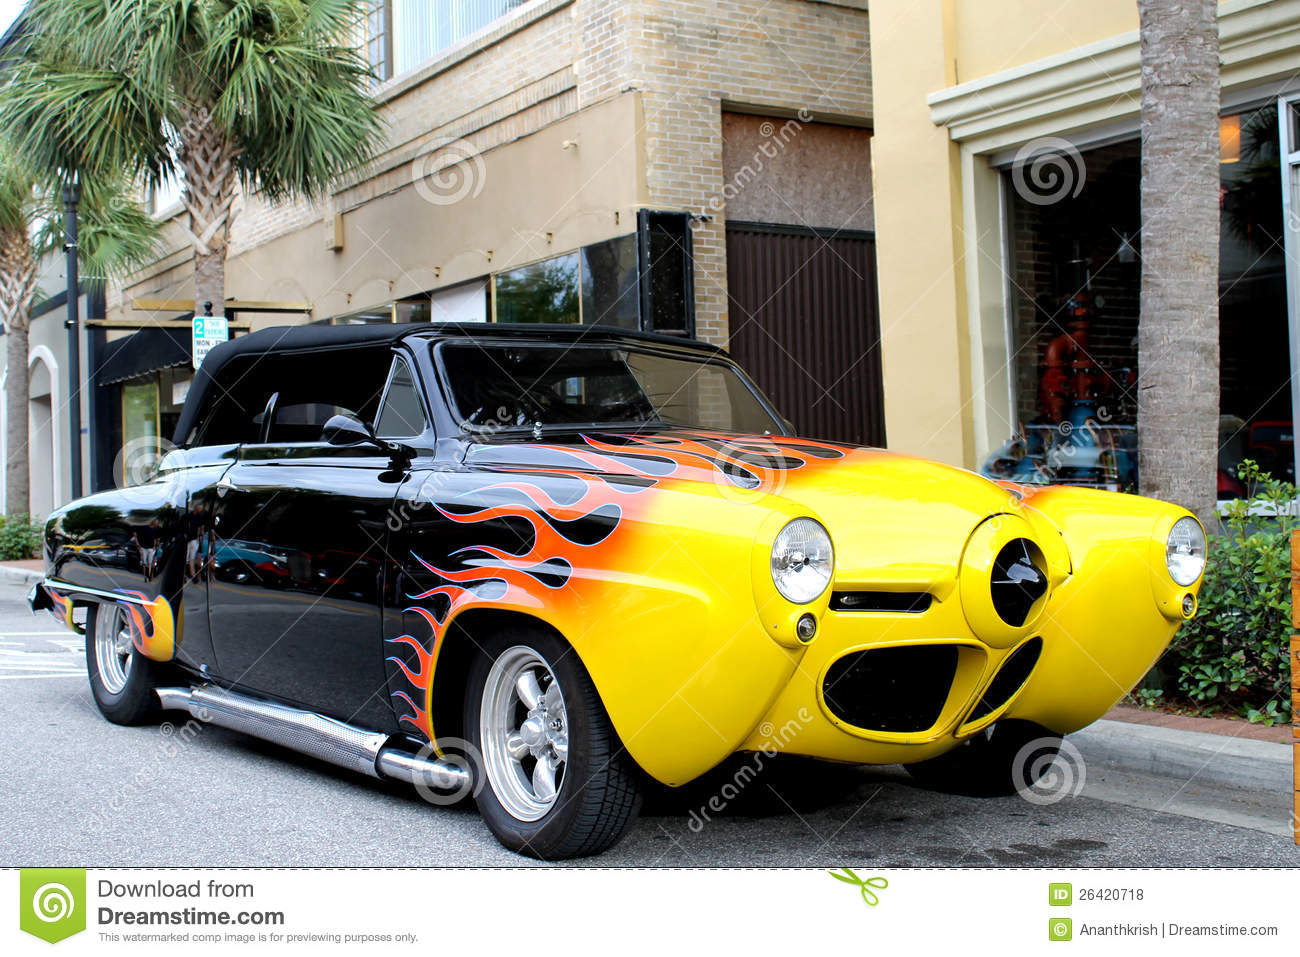 The Old Studebaker Car Stock Photo. Image Of Show, Built